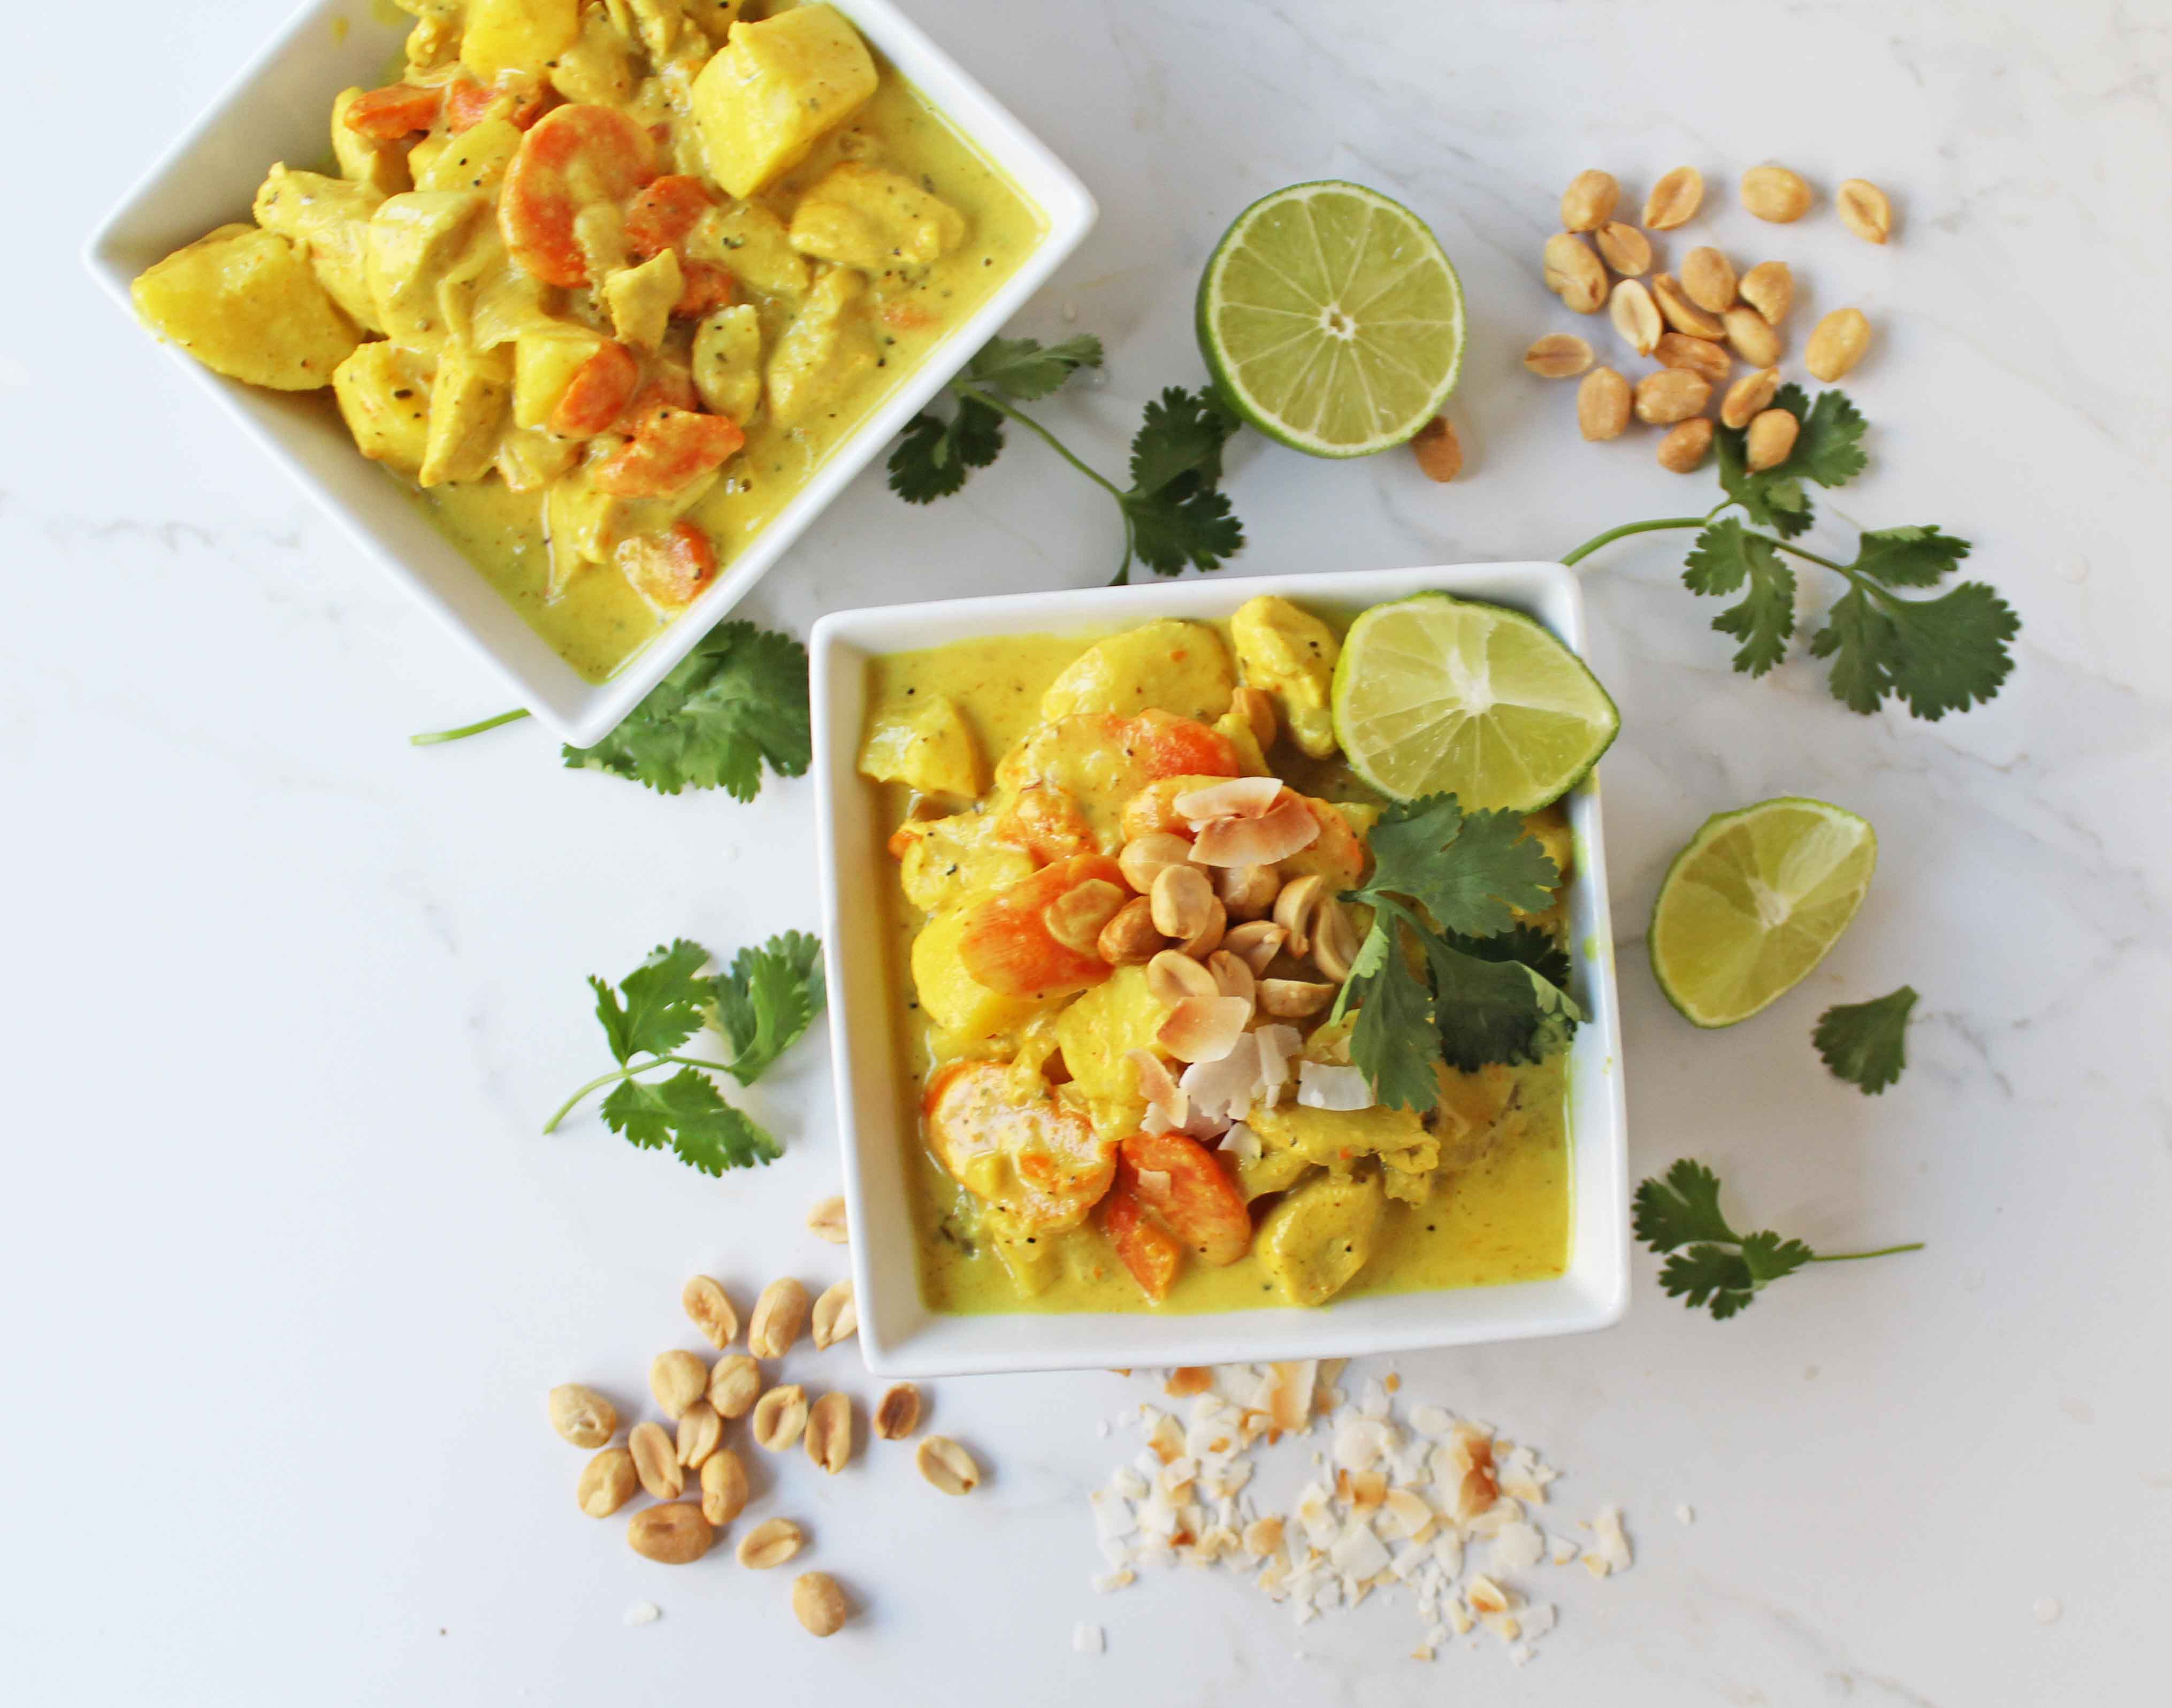 Green Monster Chicken Curry Bowls by Modern Honey. Gluten-free dinner made in 30 minutes. Popular Green Curry Chicken and Vegetables dish.